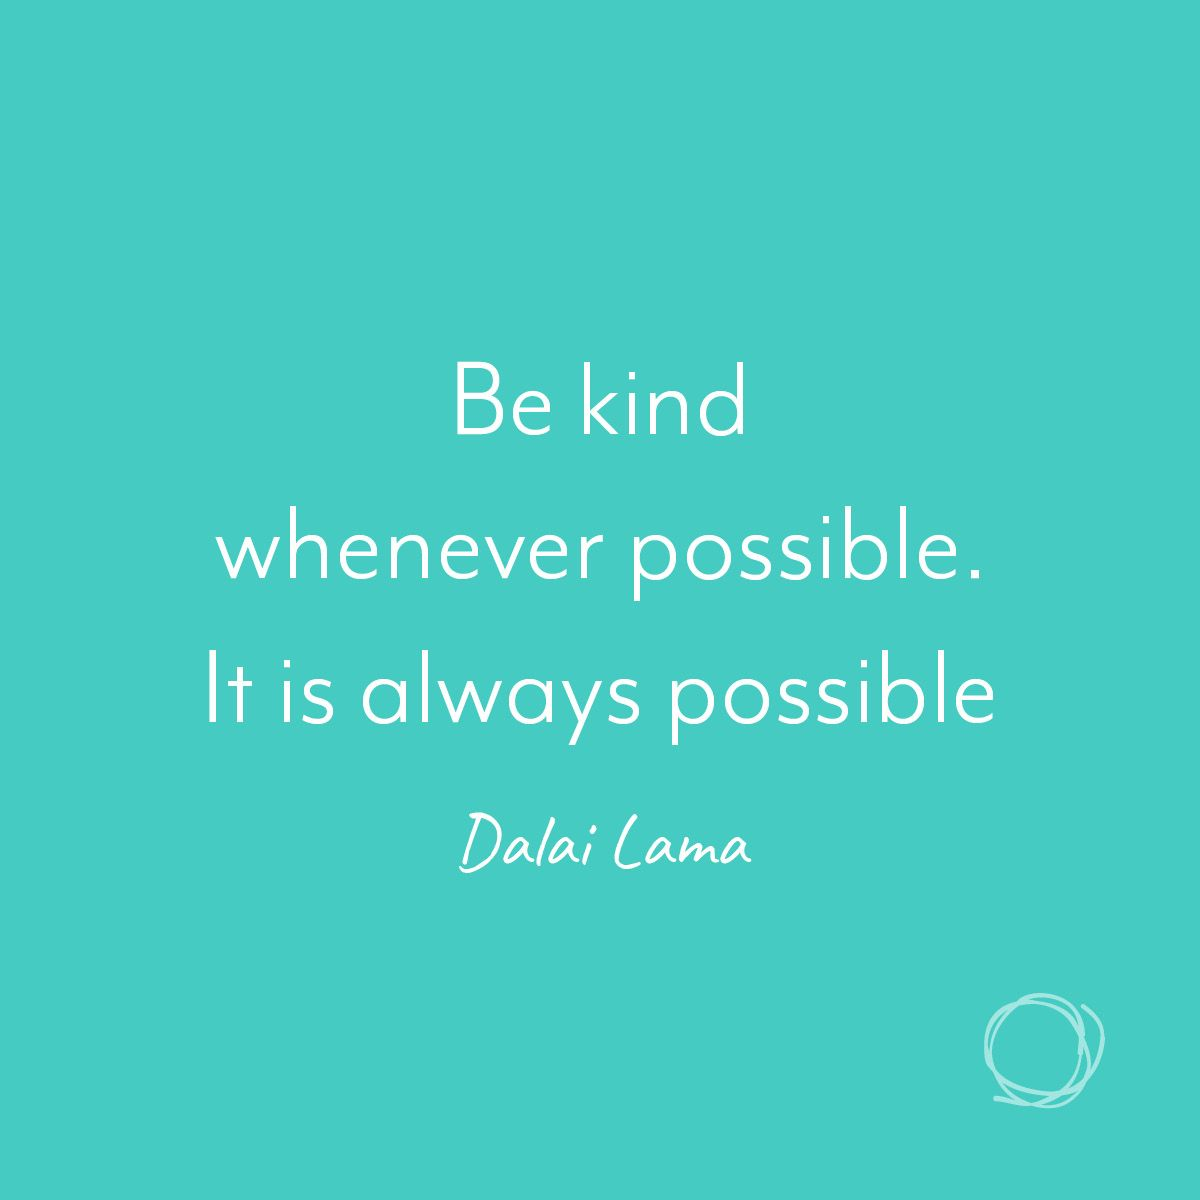 Dalai Lama Quotes Be Kind Whenever Possible